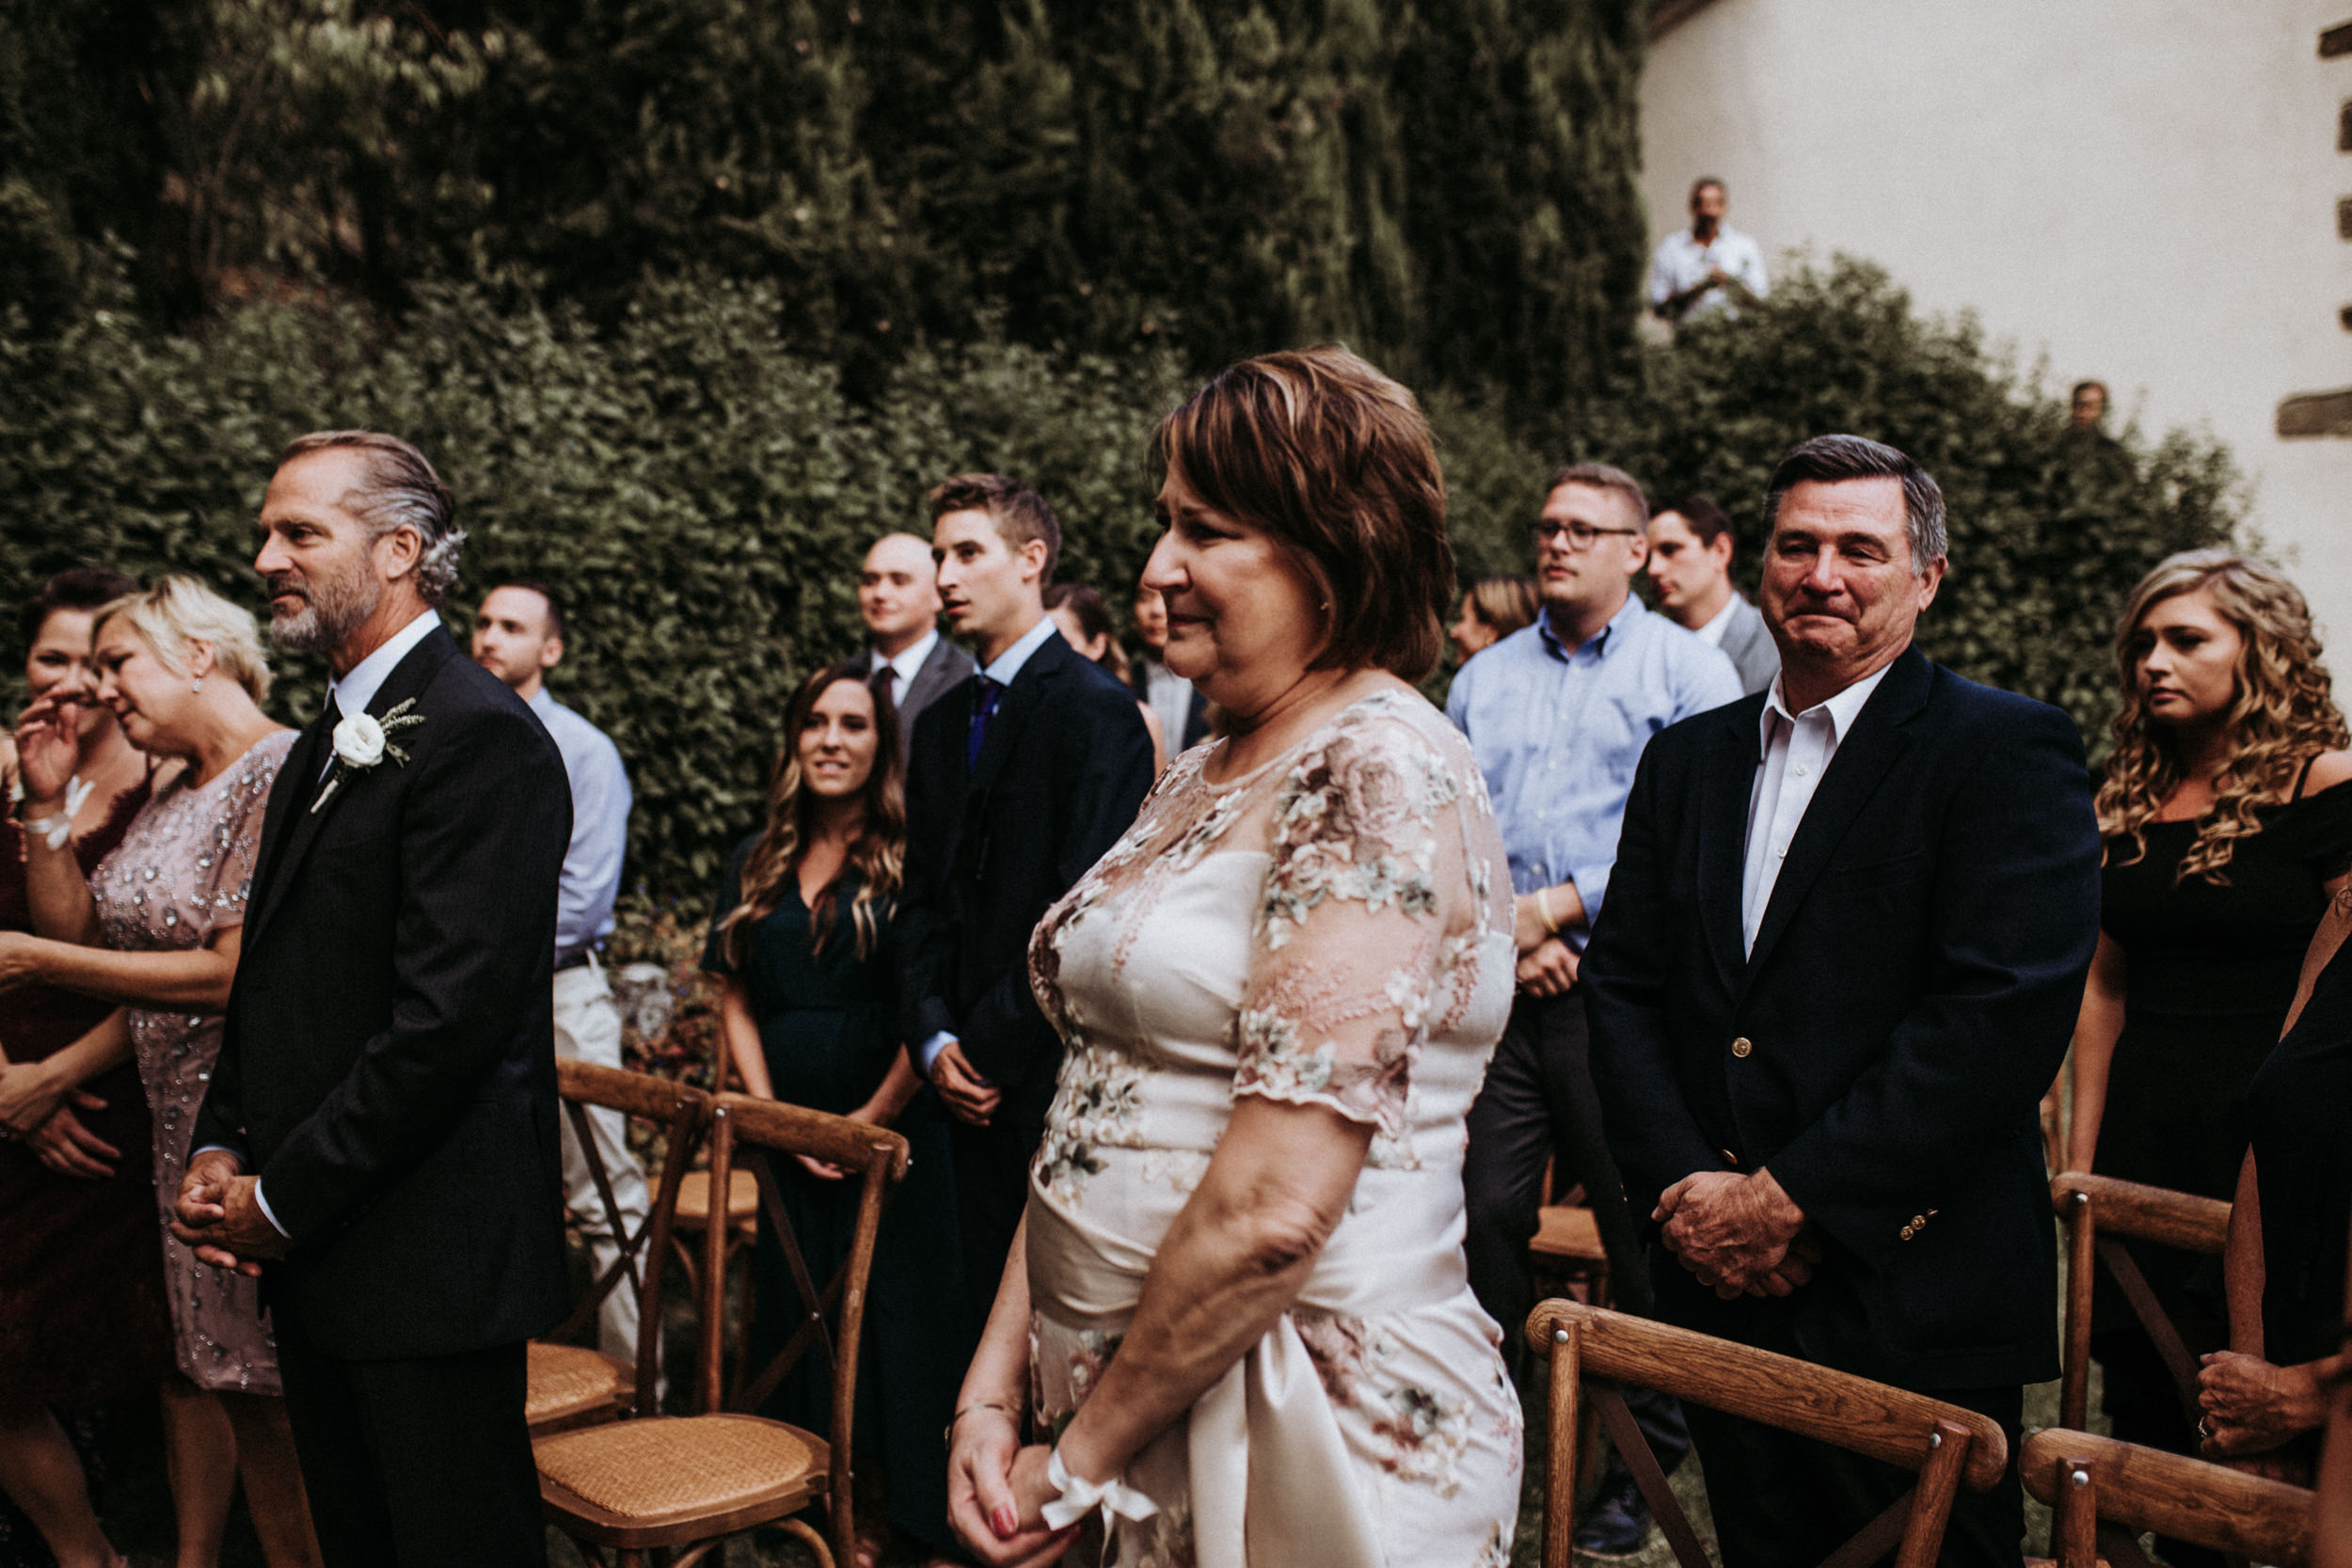 dm_photography_KW_Tuscanyweddingday_208